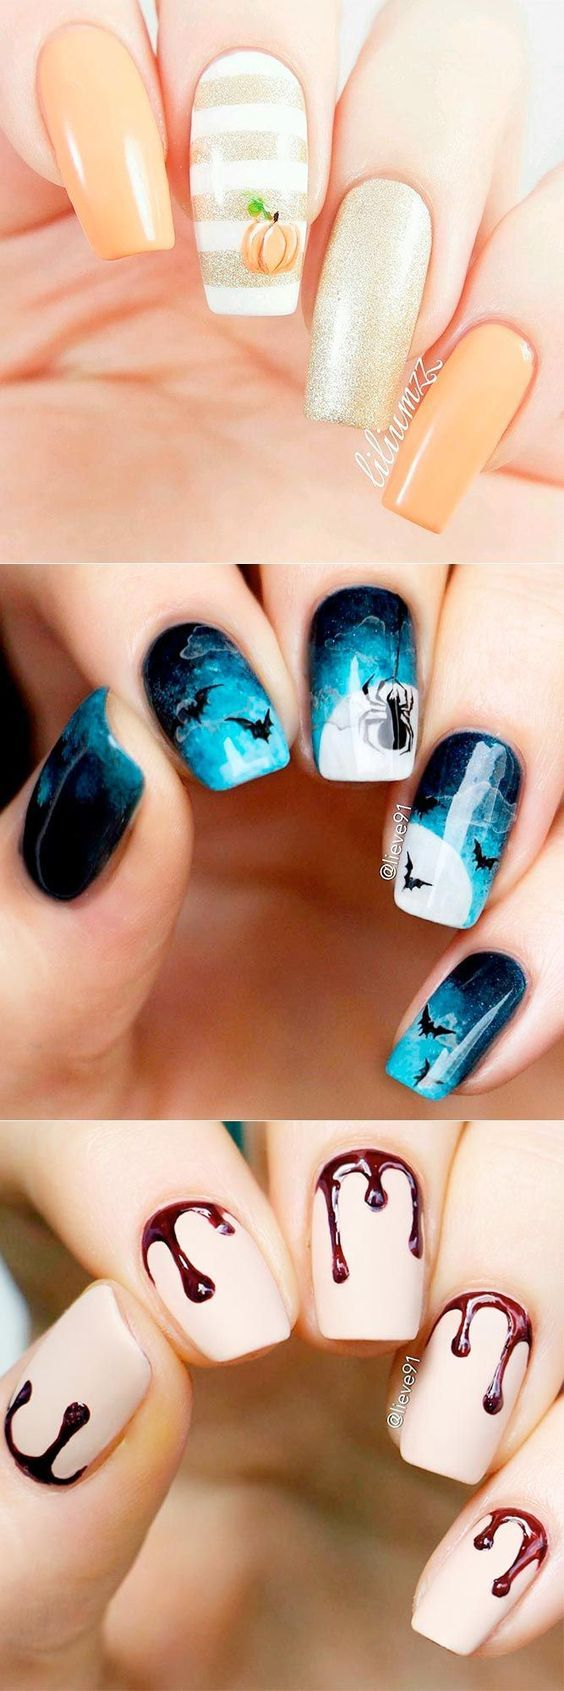 33 Spooky Halloween Nail Designs for More Fun | Halloween nail ...